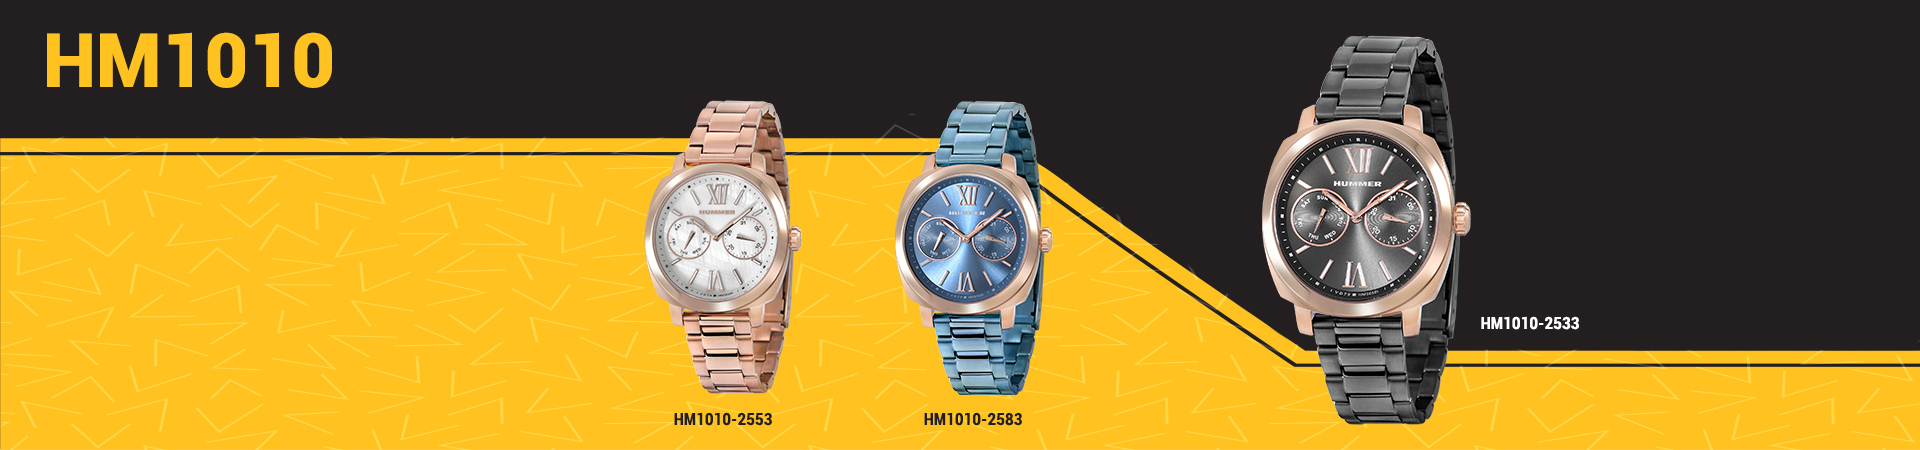 Hummer Watch Collection HM1010